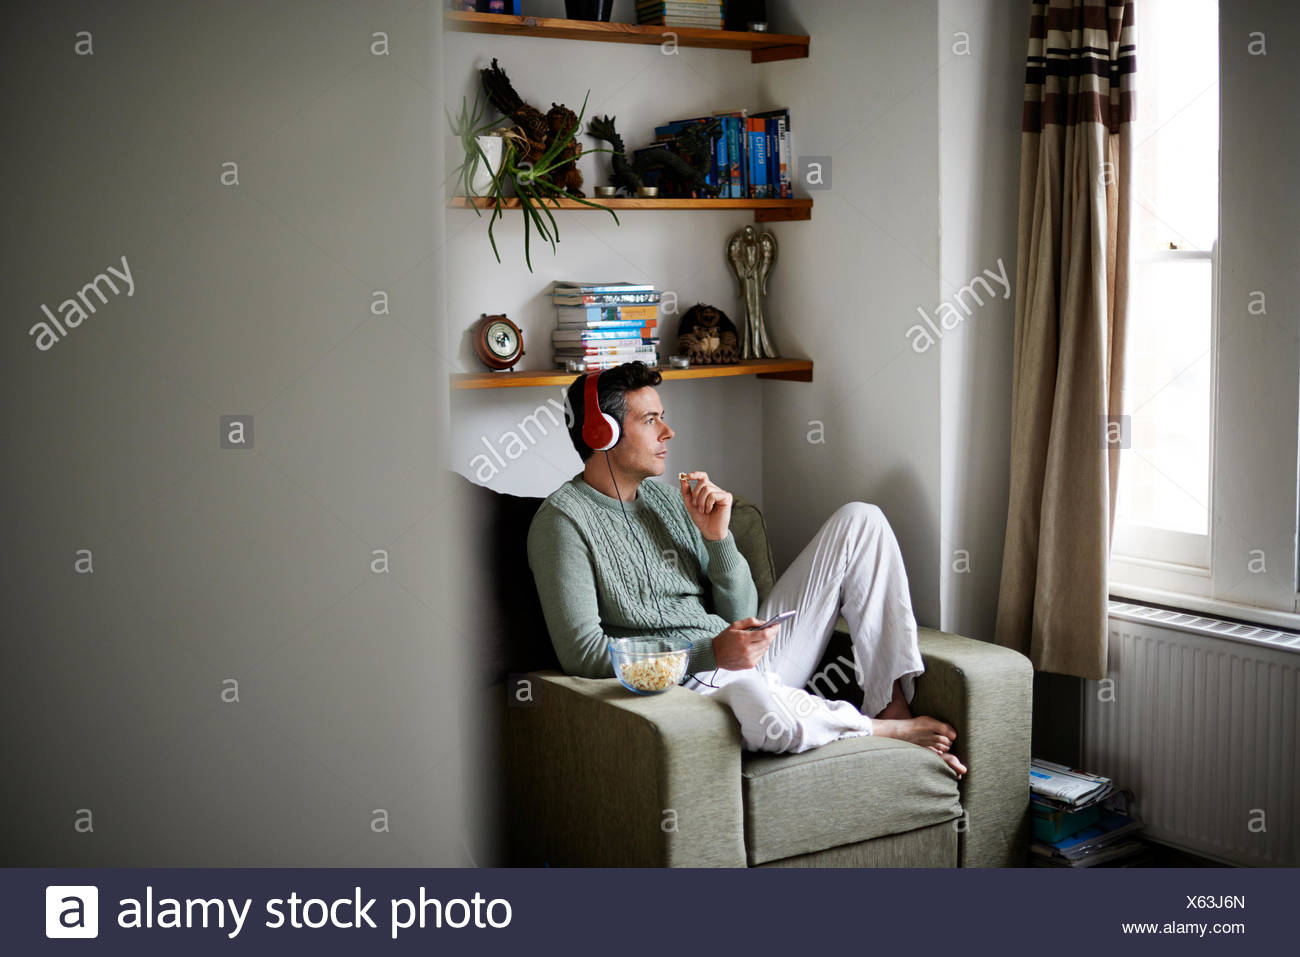 Man sitting in armchair with headphones looking through window - Stock Image